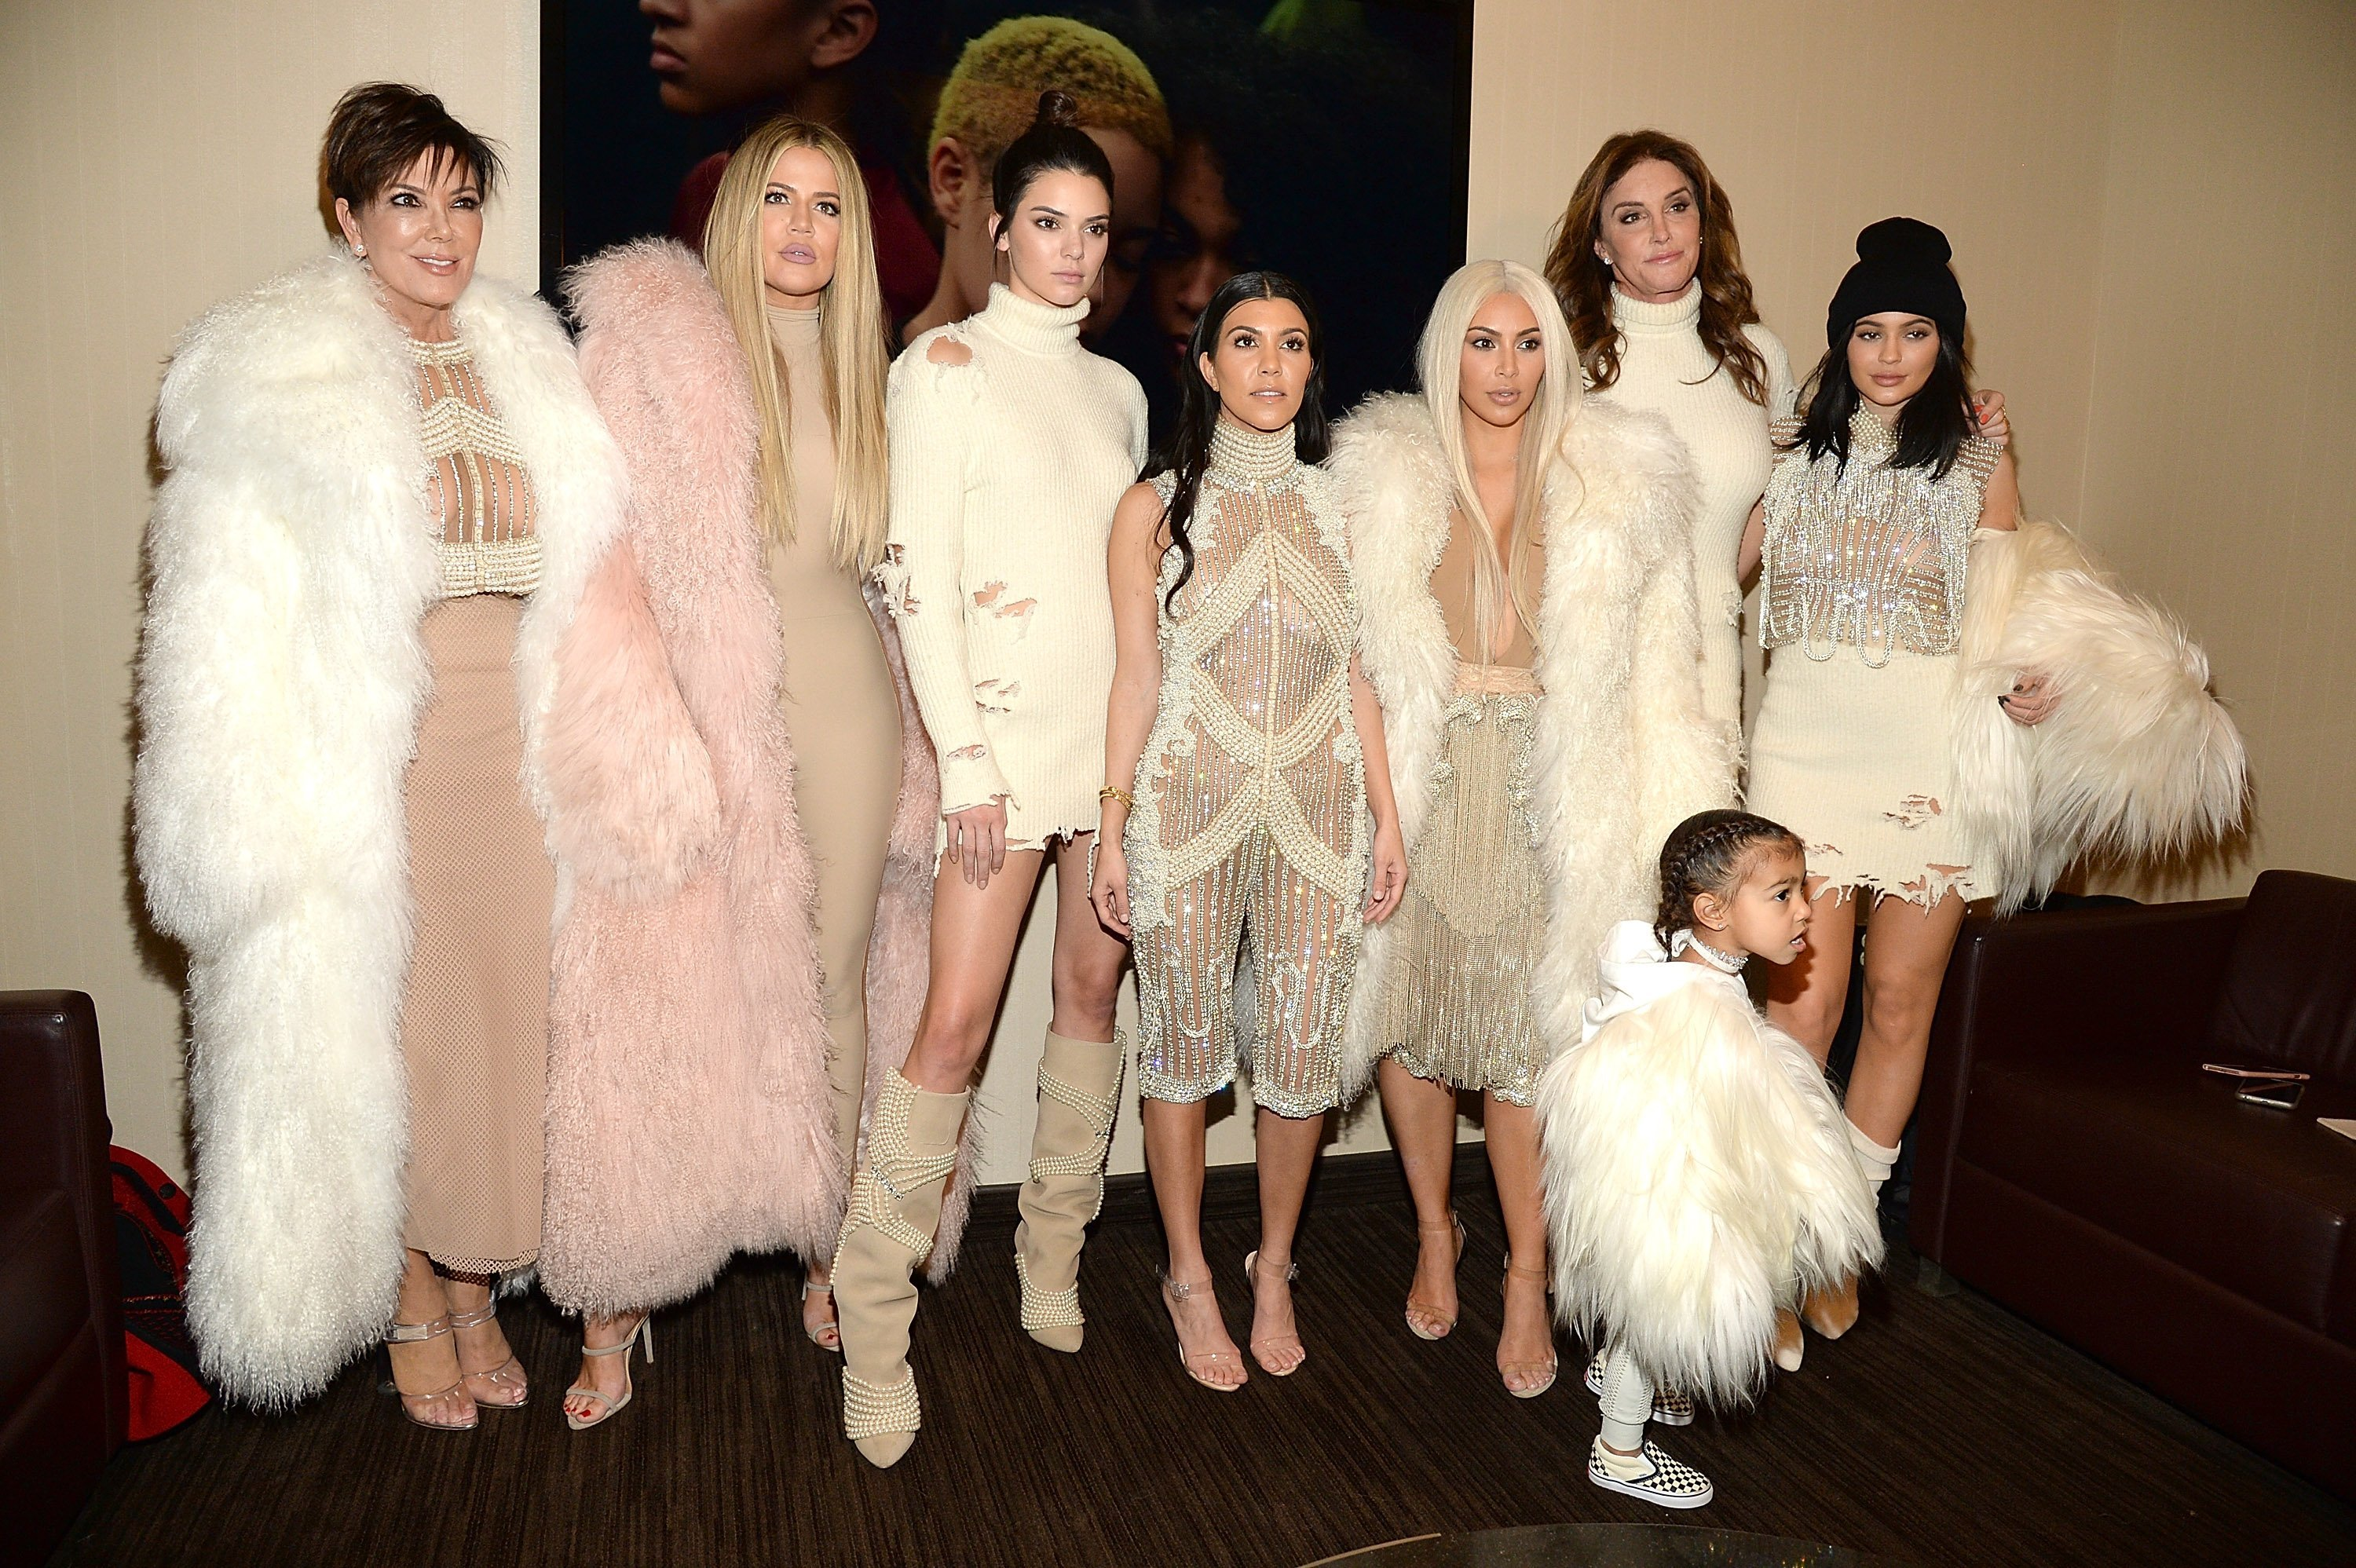 The Kardashian and Jenner family attend Kanye West Yeezy Season 3 in New York City on February 11, 2016 | Photo: Getty Images